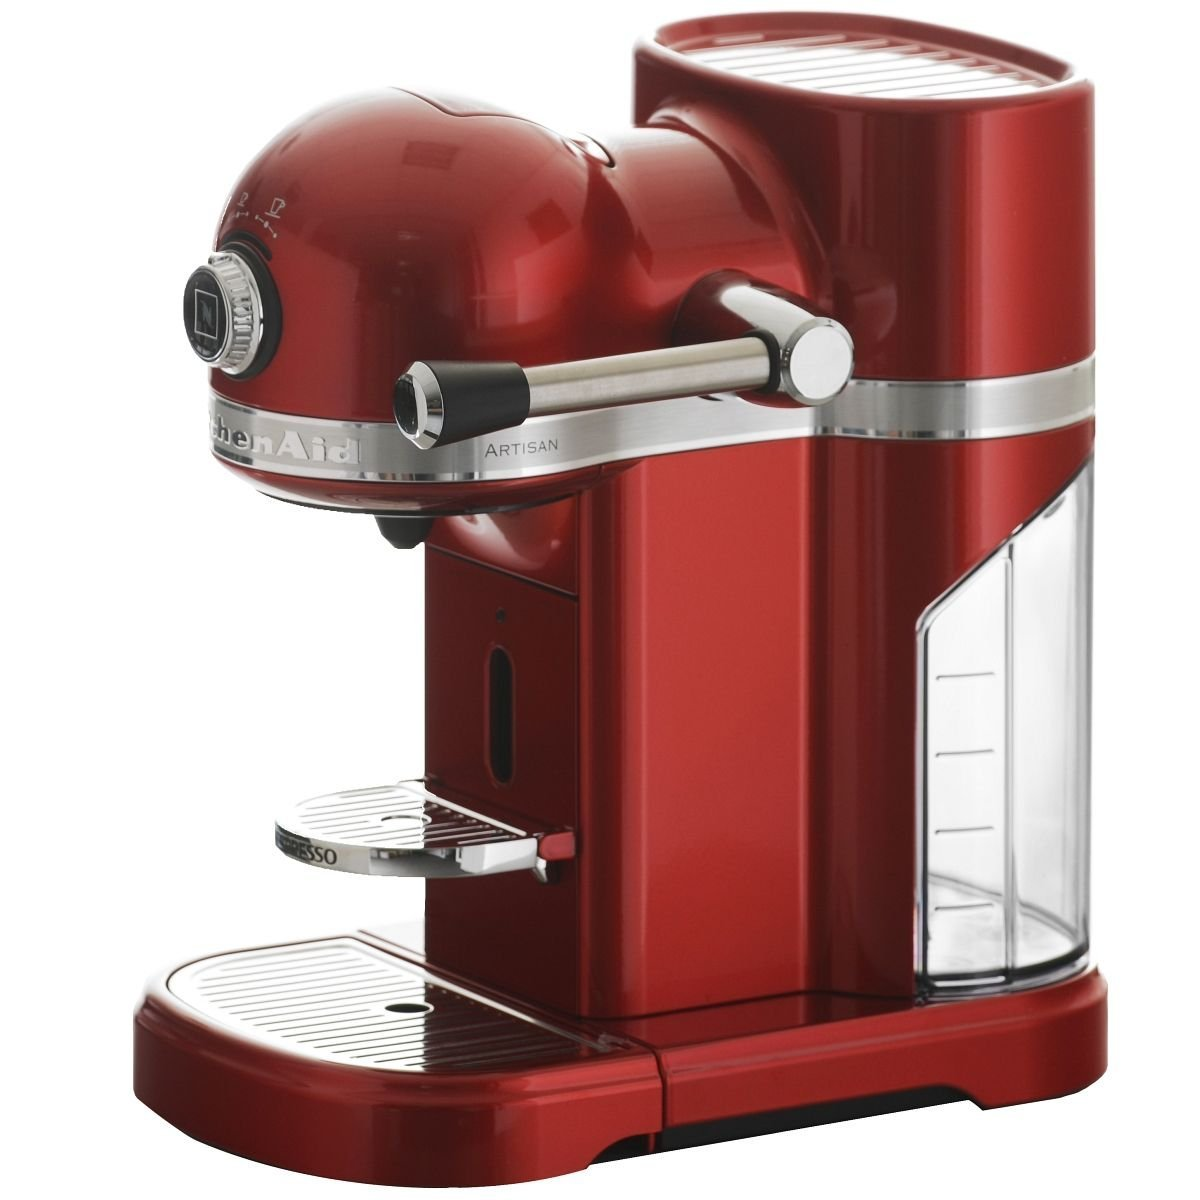 Nespresso KitchenAid